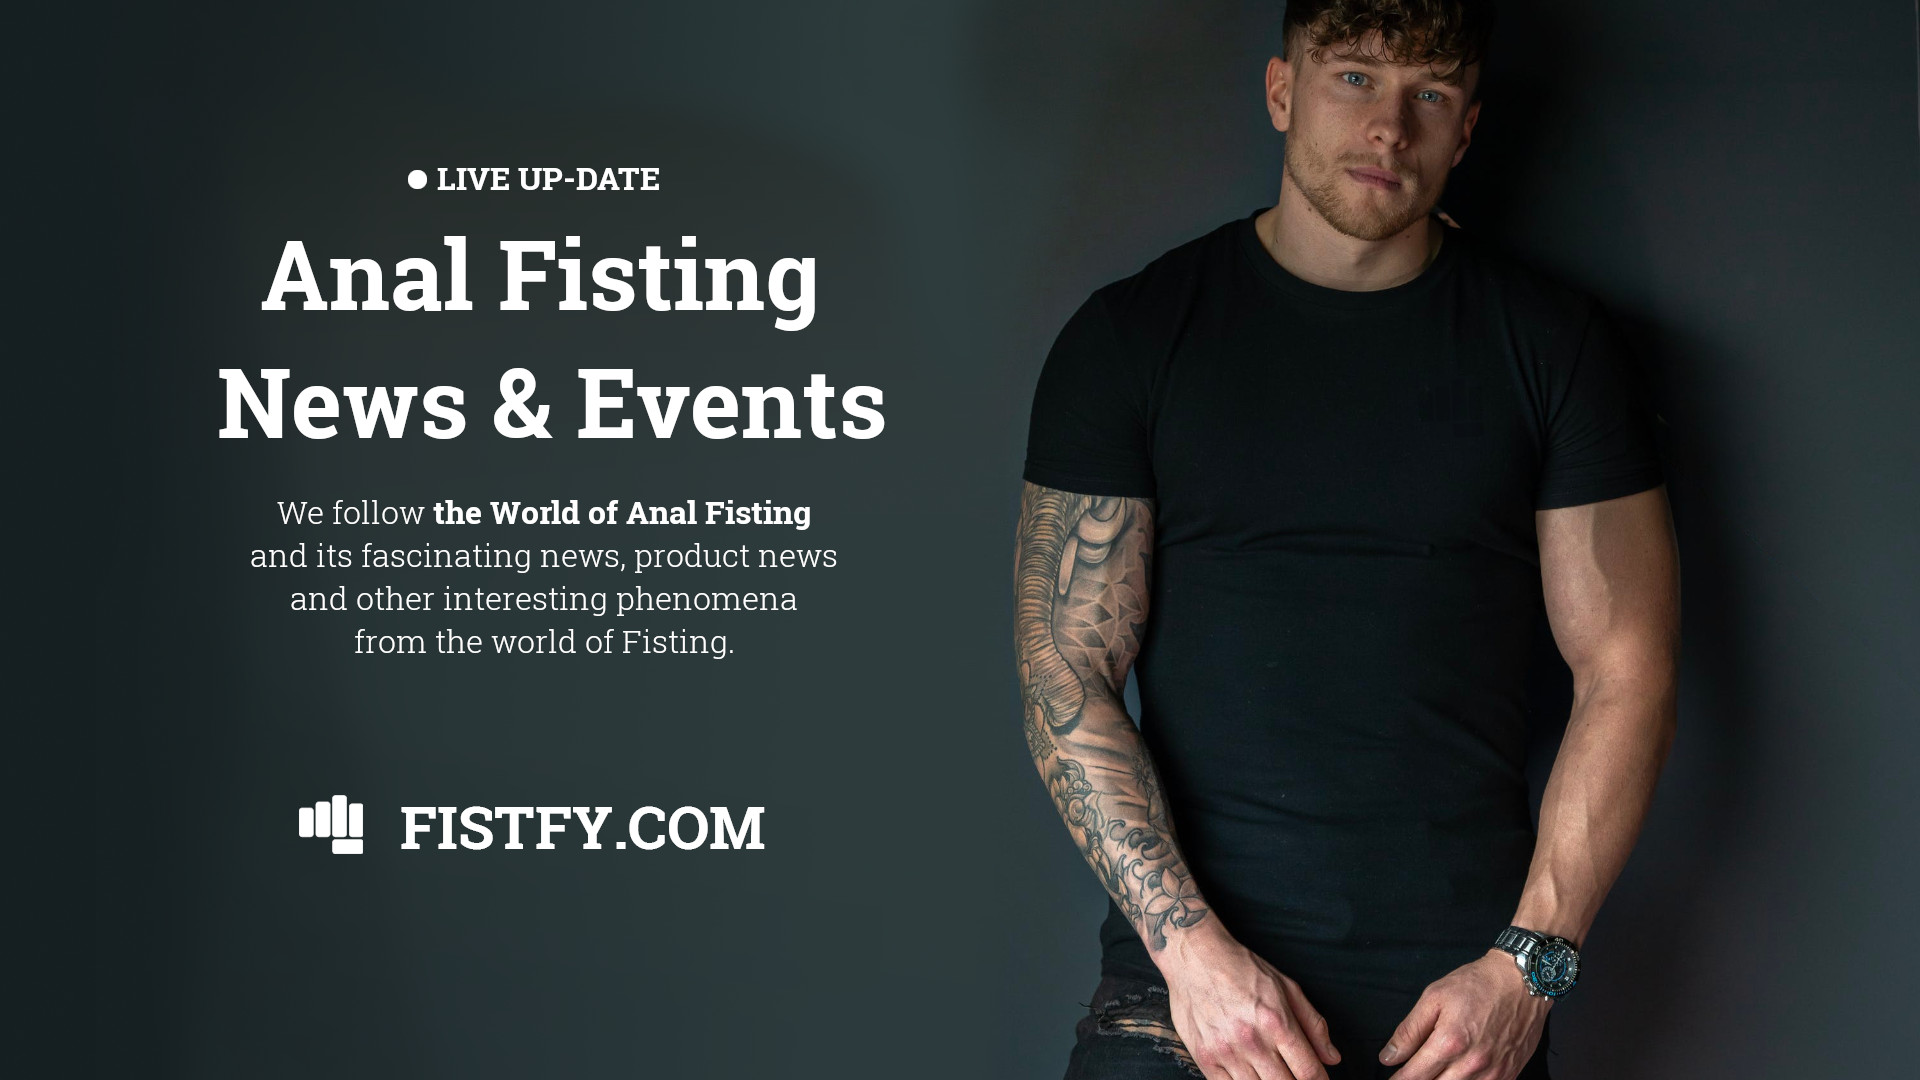 Anal Fisting News, Events, Phenomena and Fisting Product News